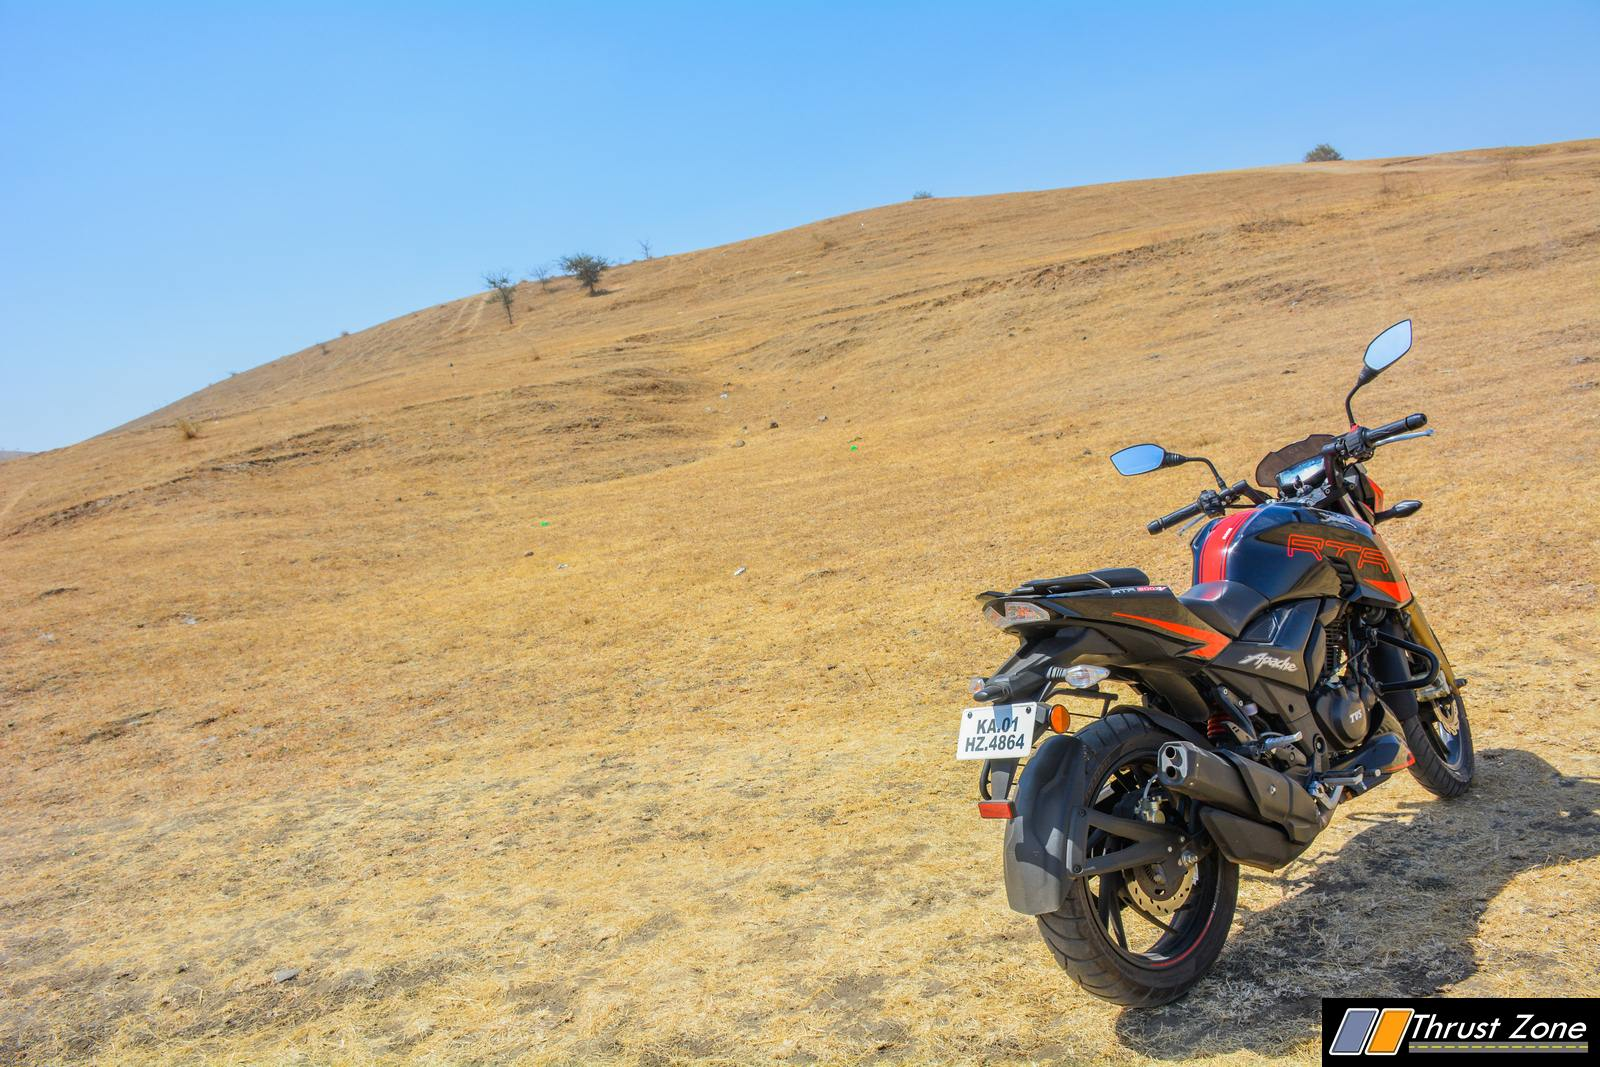 2019-Apache-RTR-200-Race-Edition-Review-12